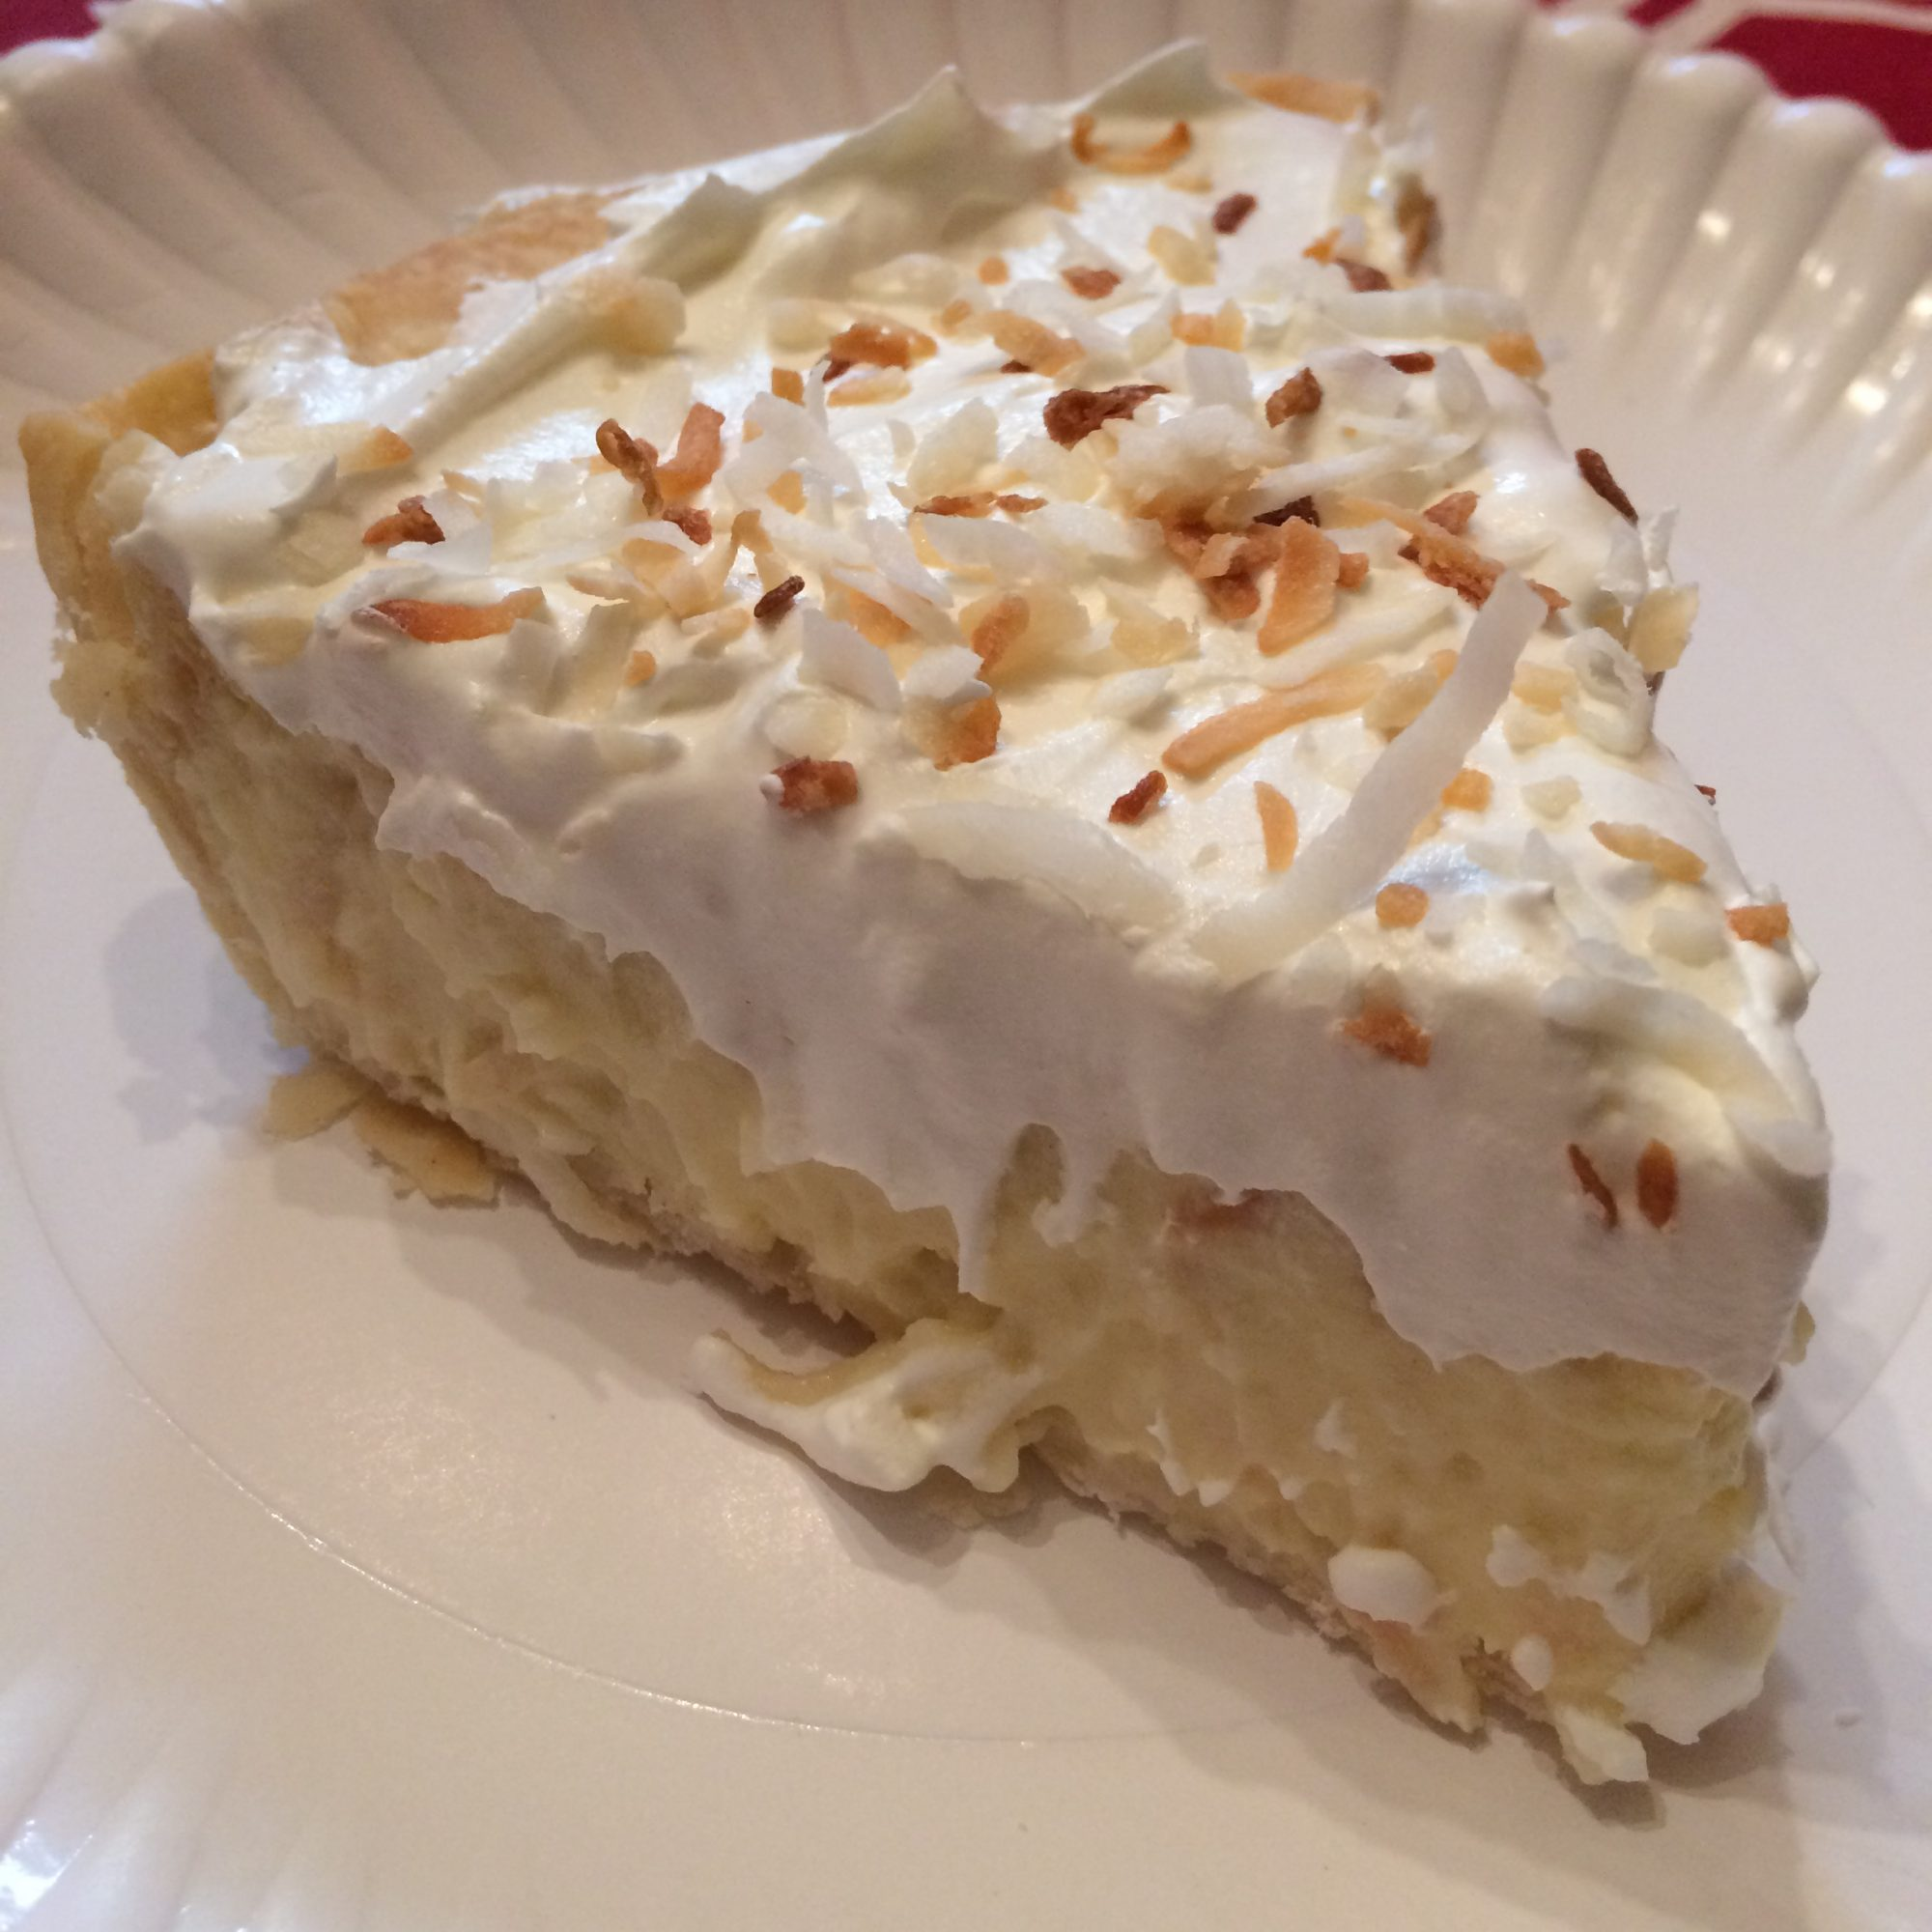 a slice of pie topped with toasted coconut on a white plate